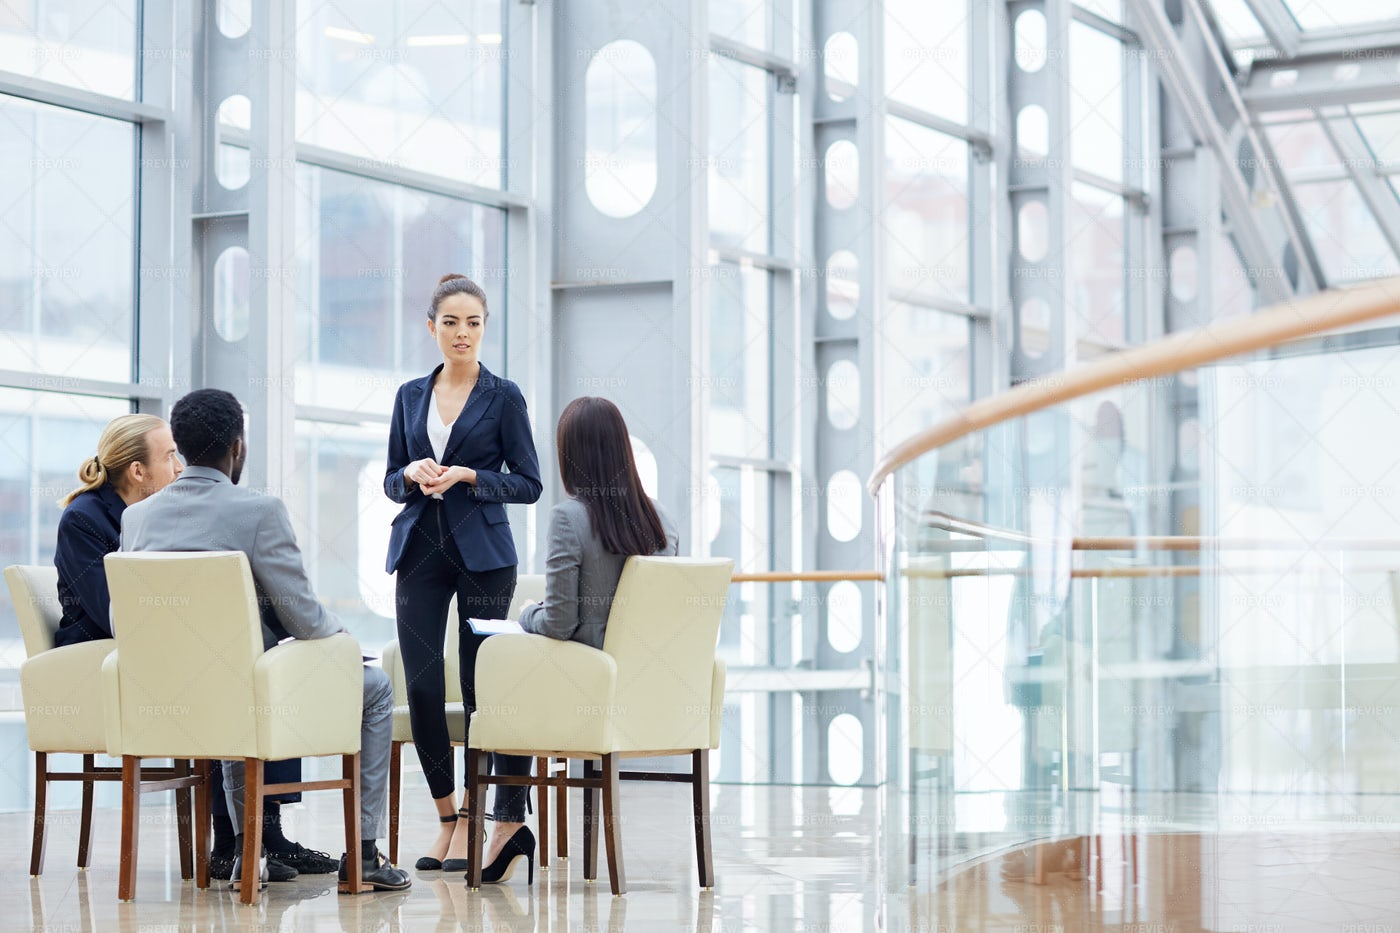 Business Meeting In Glass Hall: Stock Photos